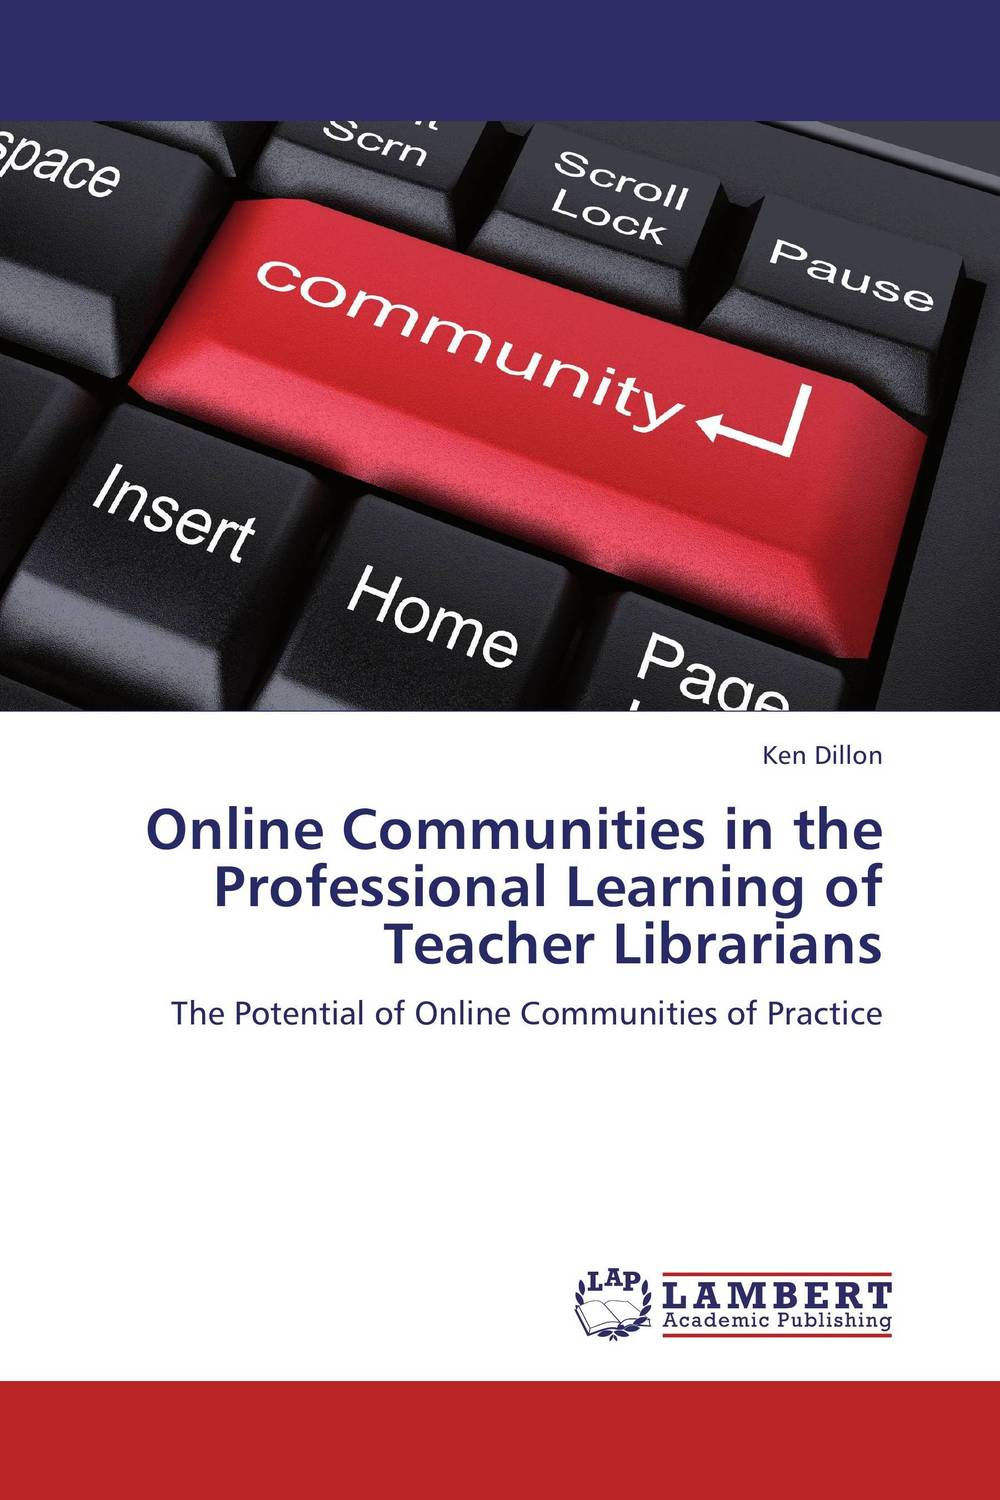 Online Communities in the Professional Learning of Teacher Librarians